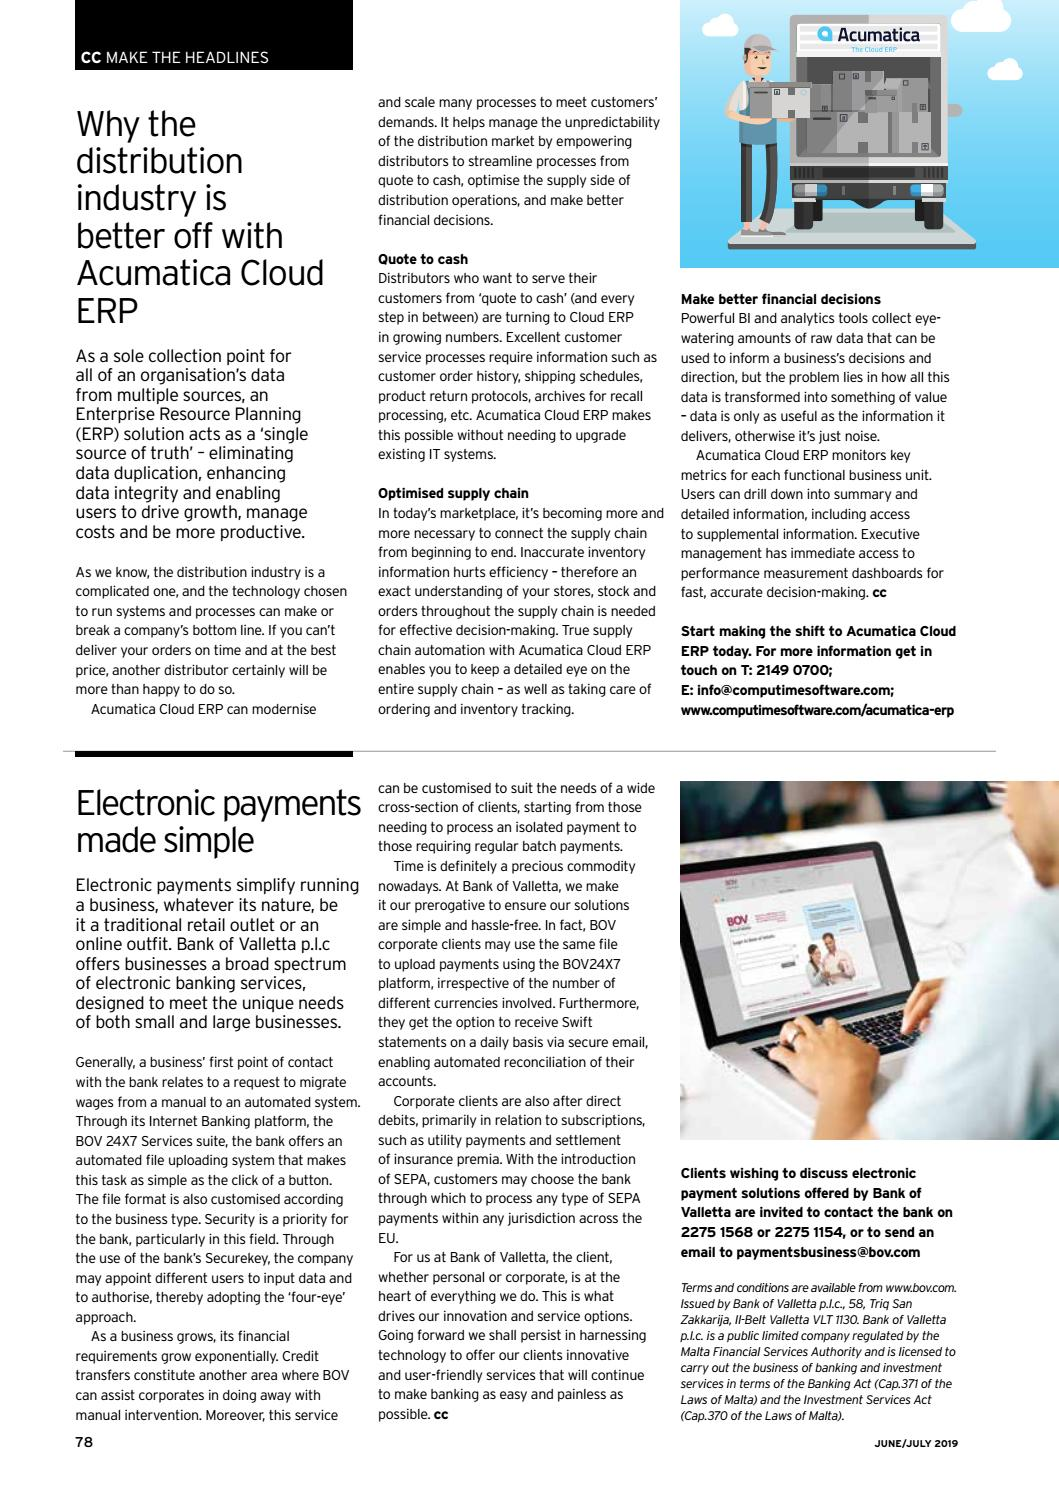 The Commercial Courier June/July 2019 by Content House Group - issuu